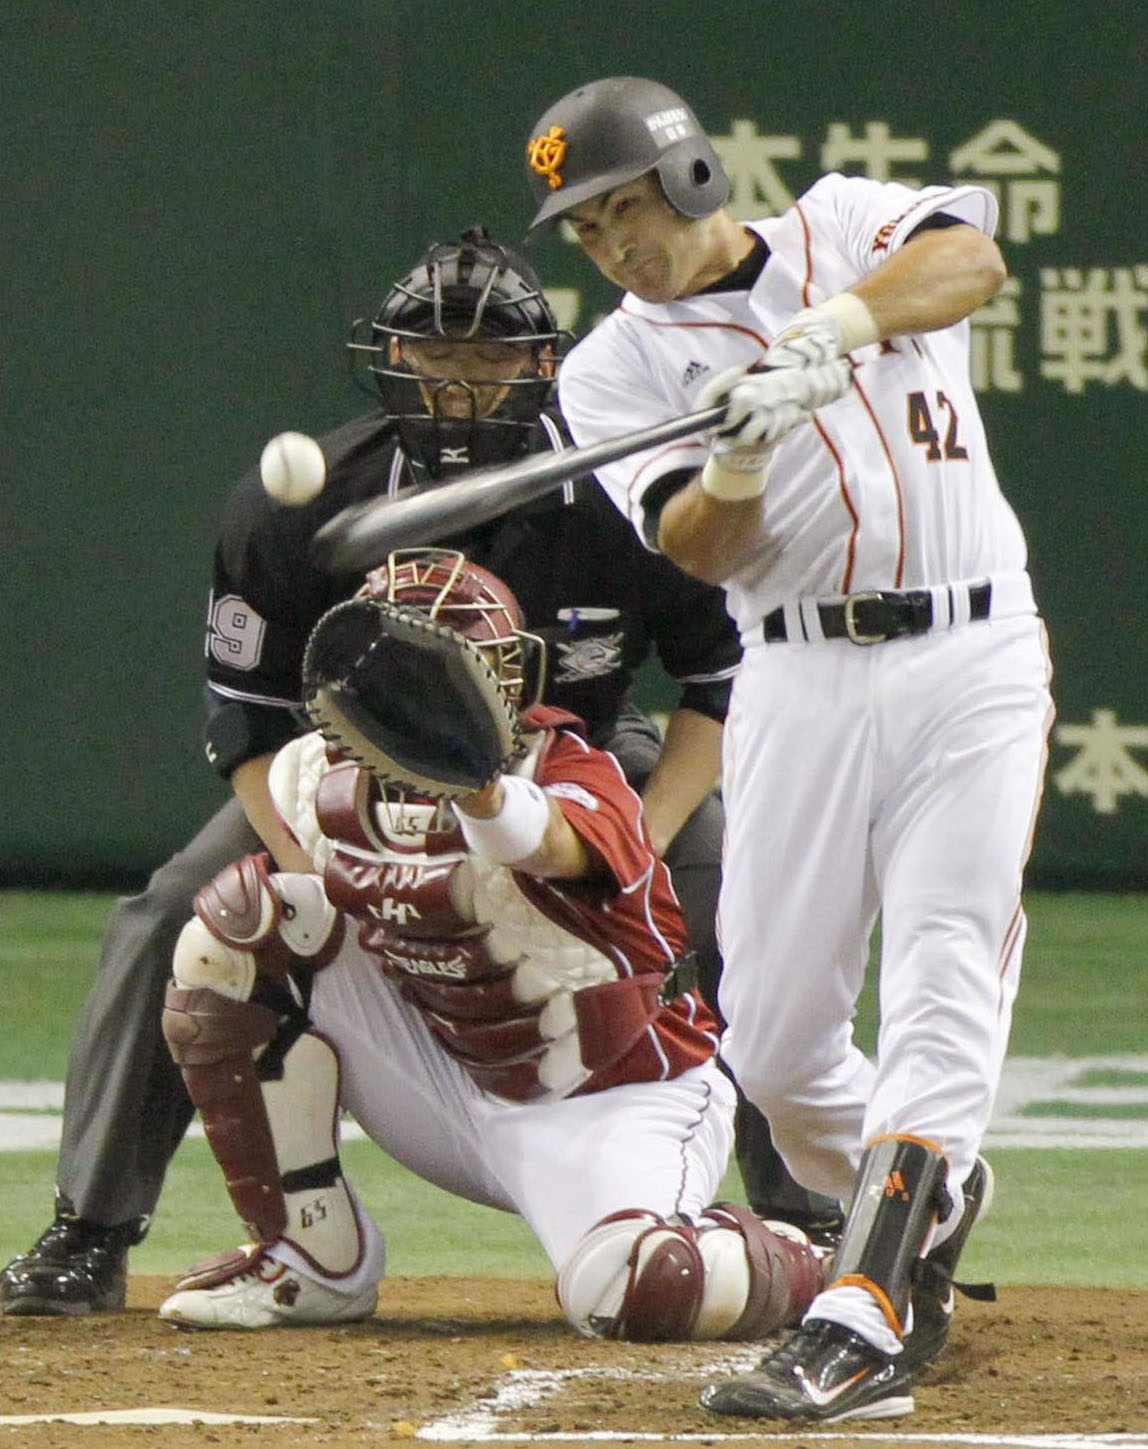 Back to speed: Edgar Gonzalez is getting back into the groove after returning to the Yomiuri Giants from a period of inactivity in the United States. | KYODO